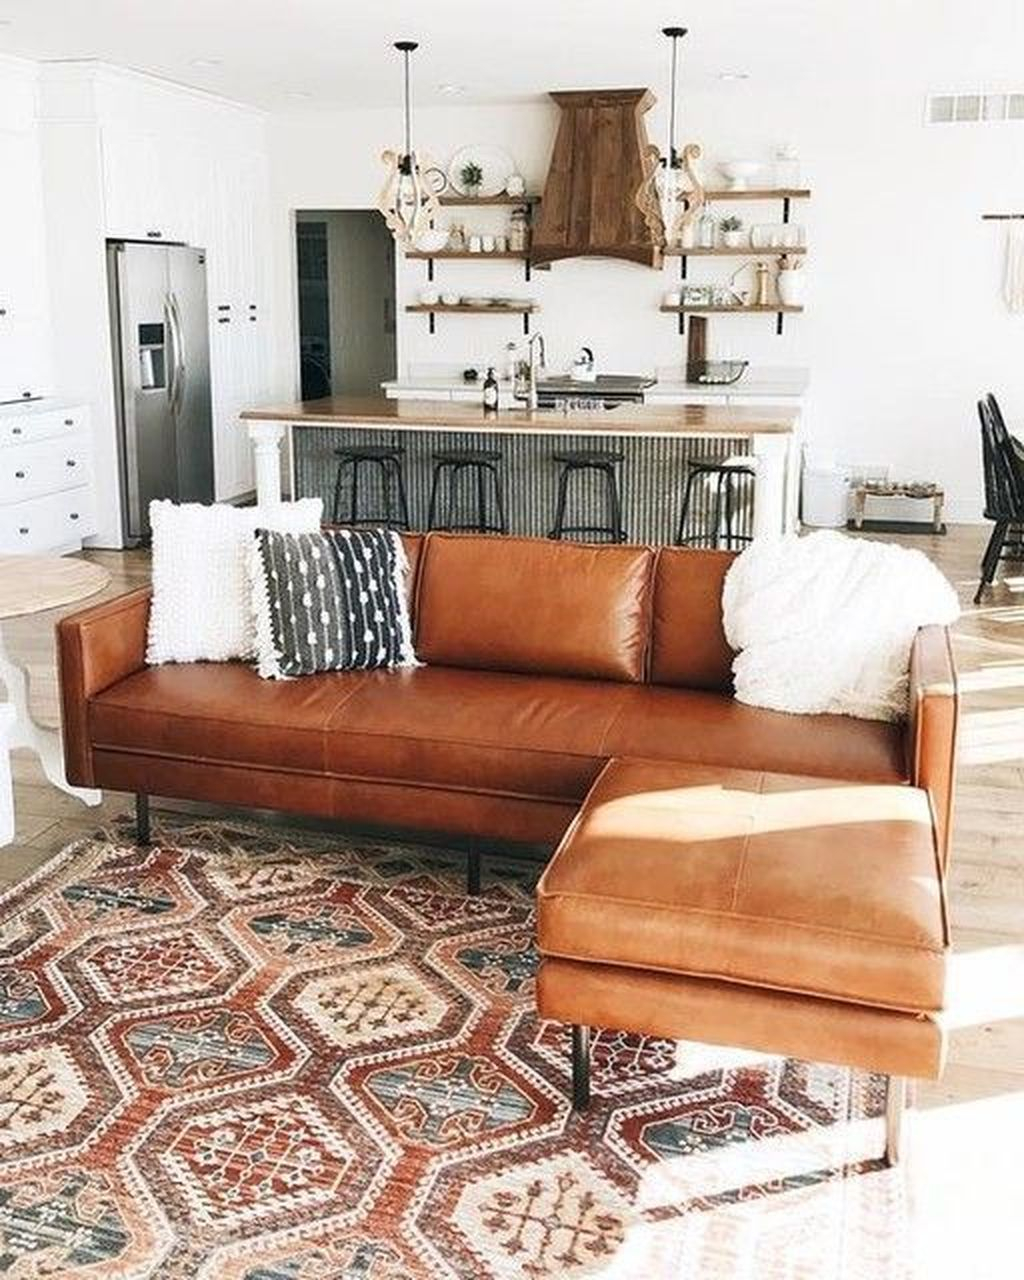 Best Tiny Living Room Design Ideas That Trend Nowaday 36